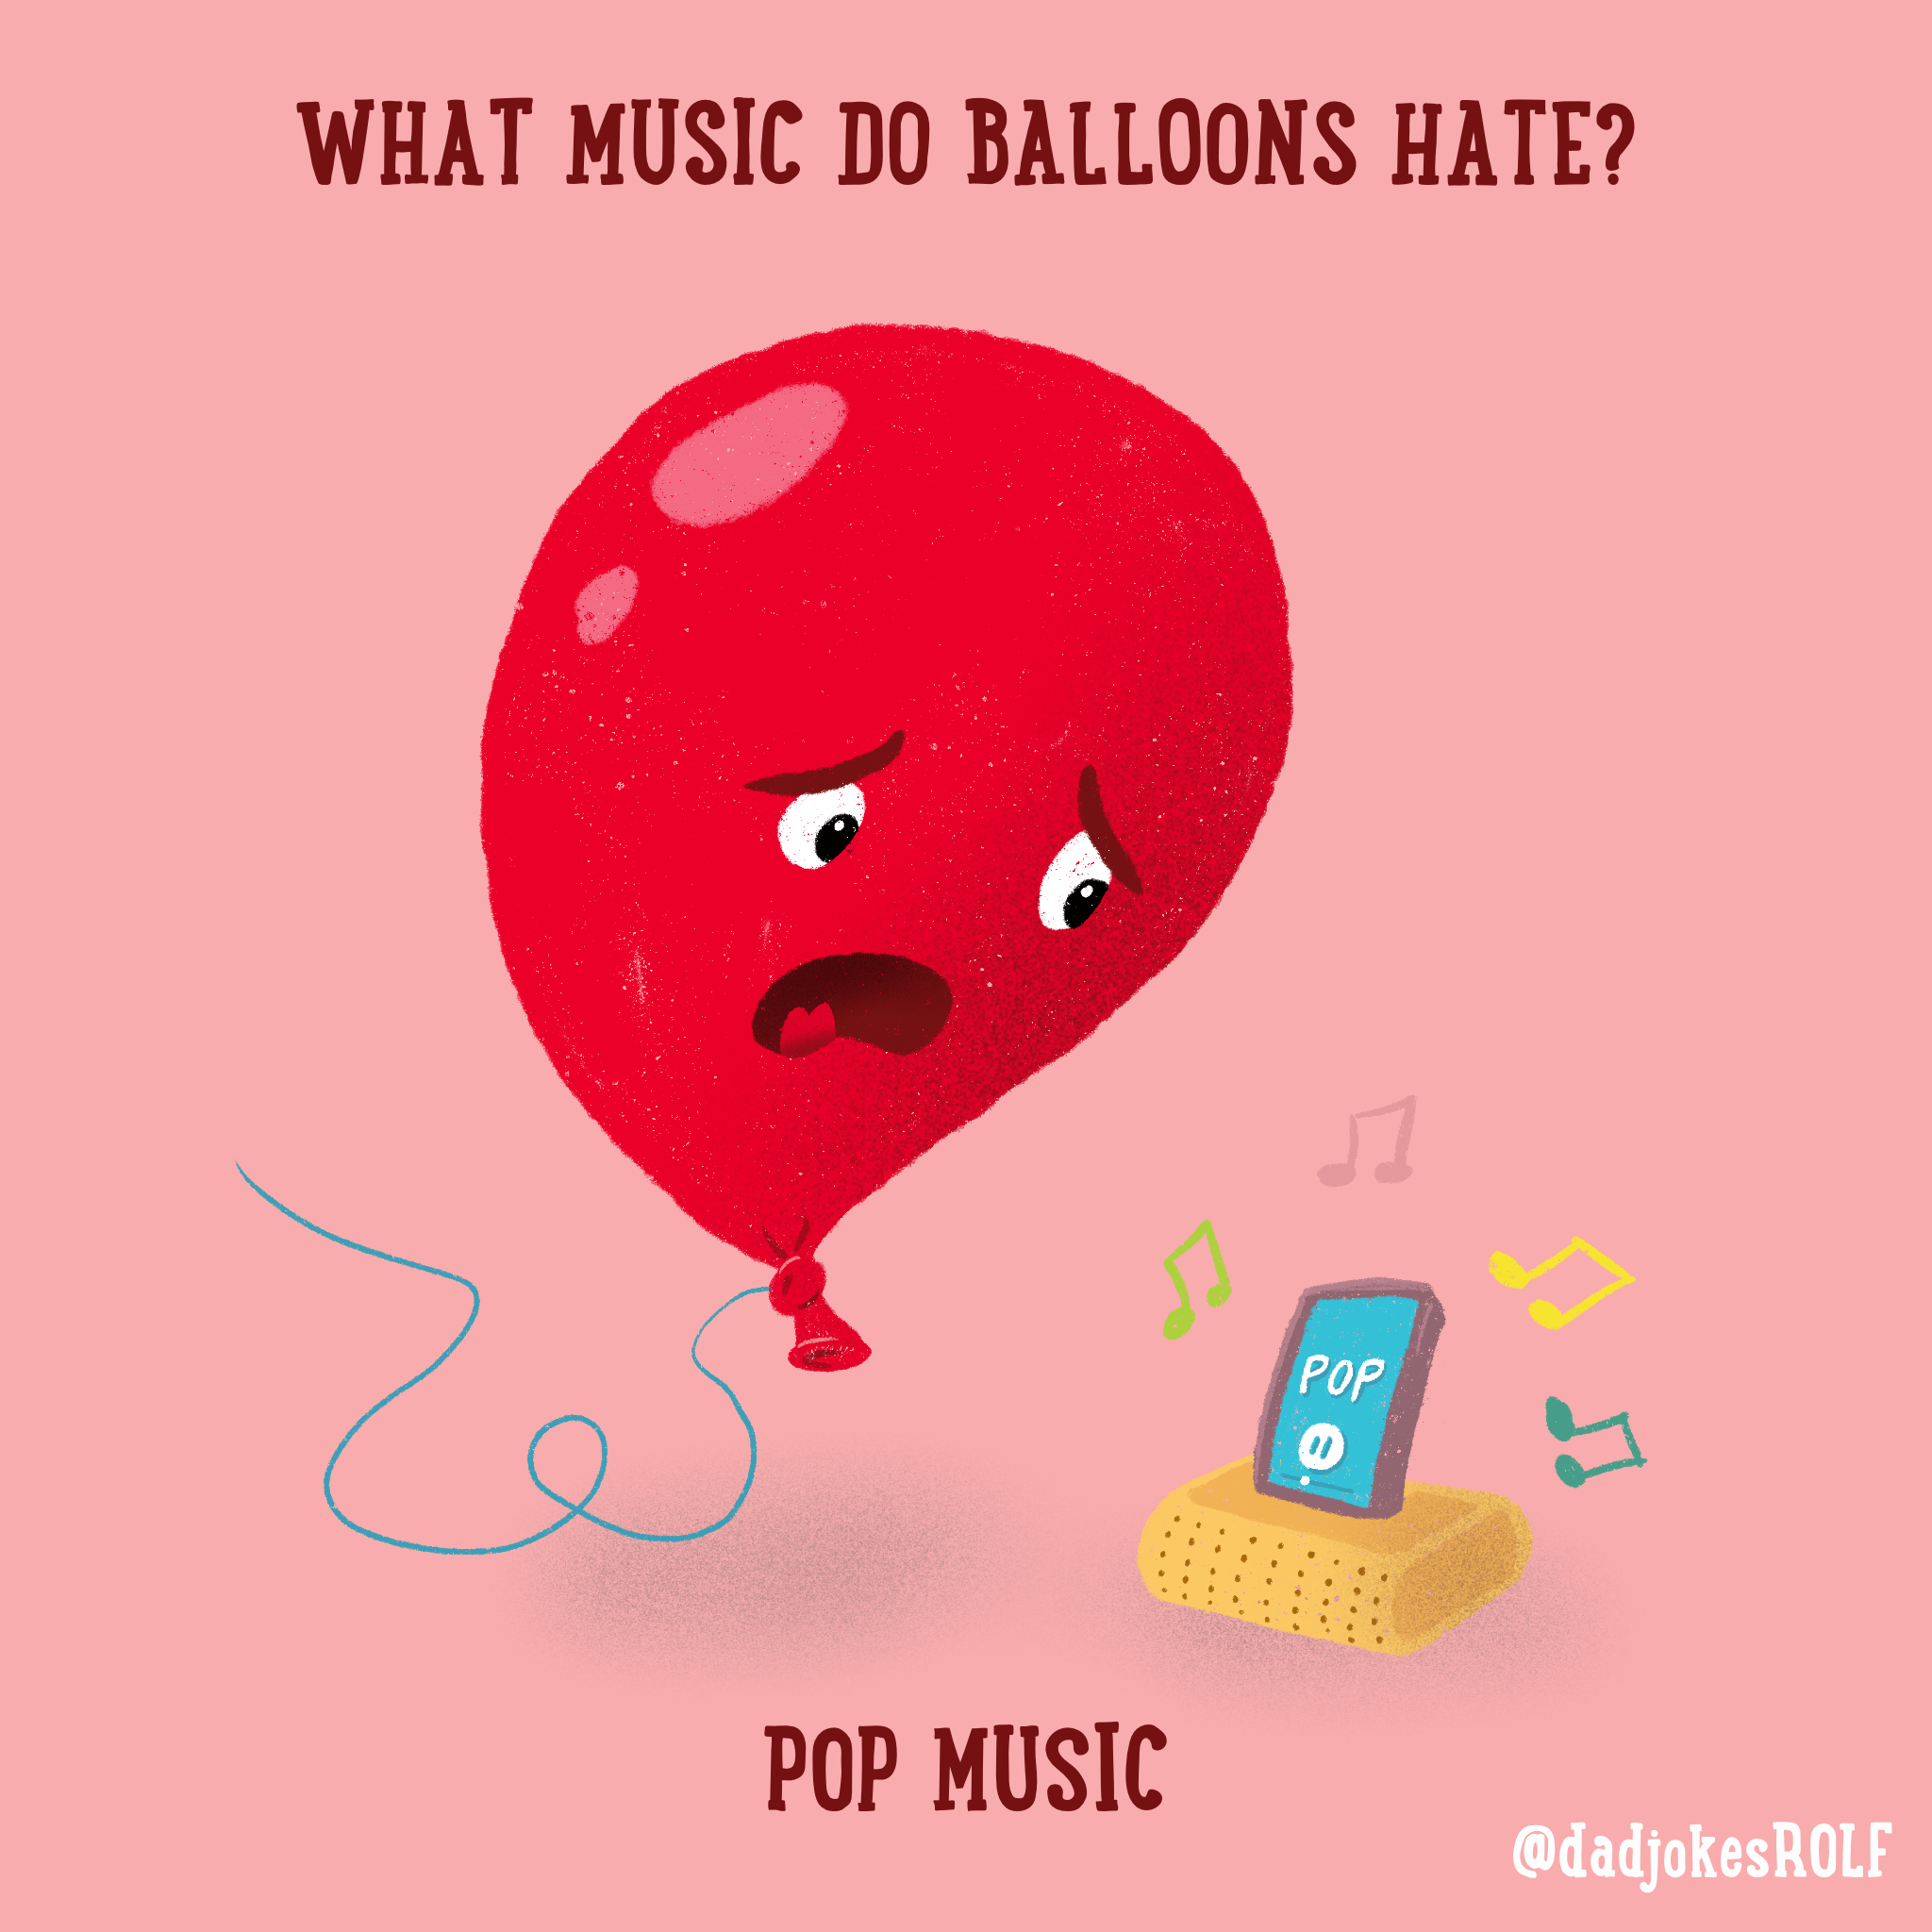 What music do balloons hate? Pop muisc